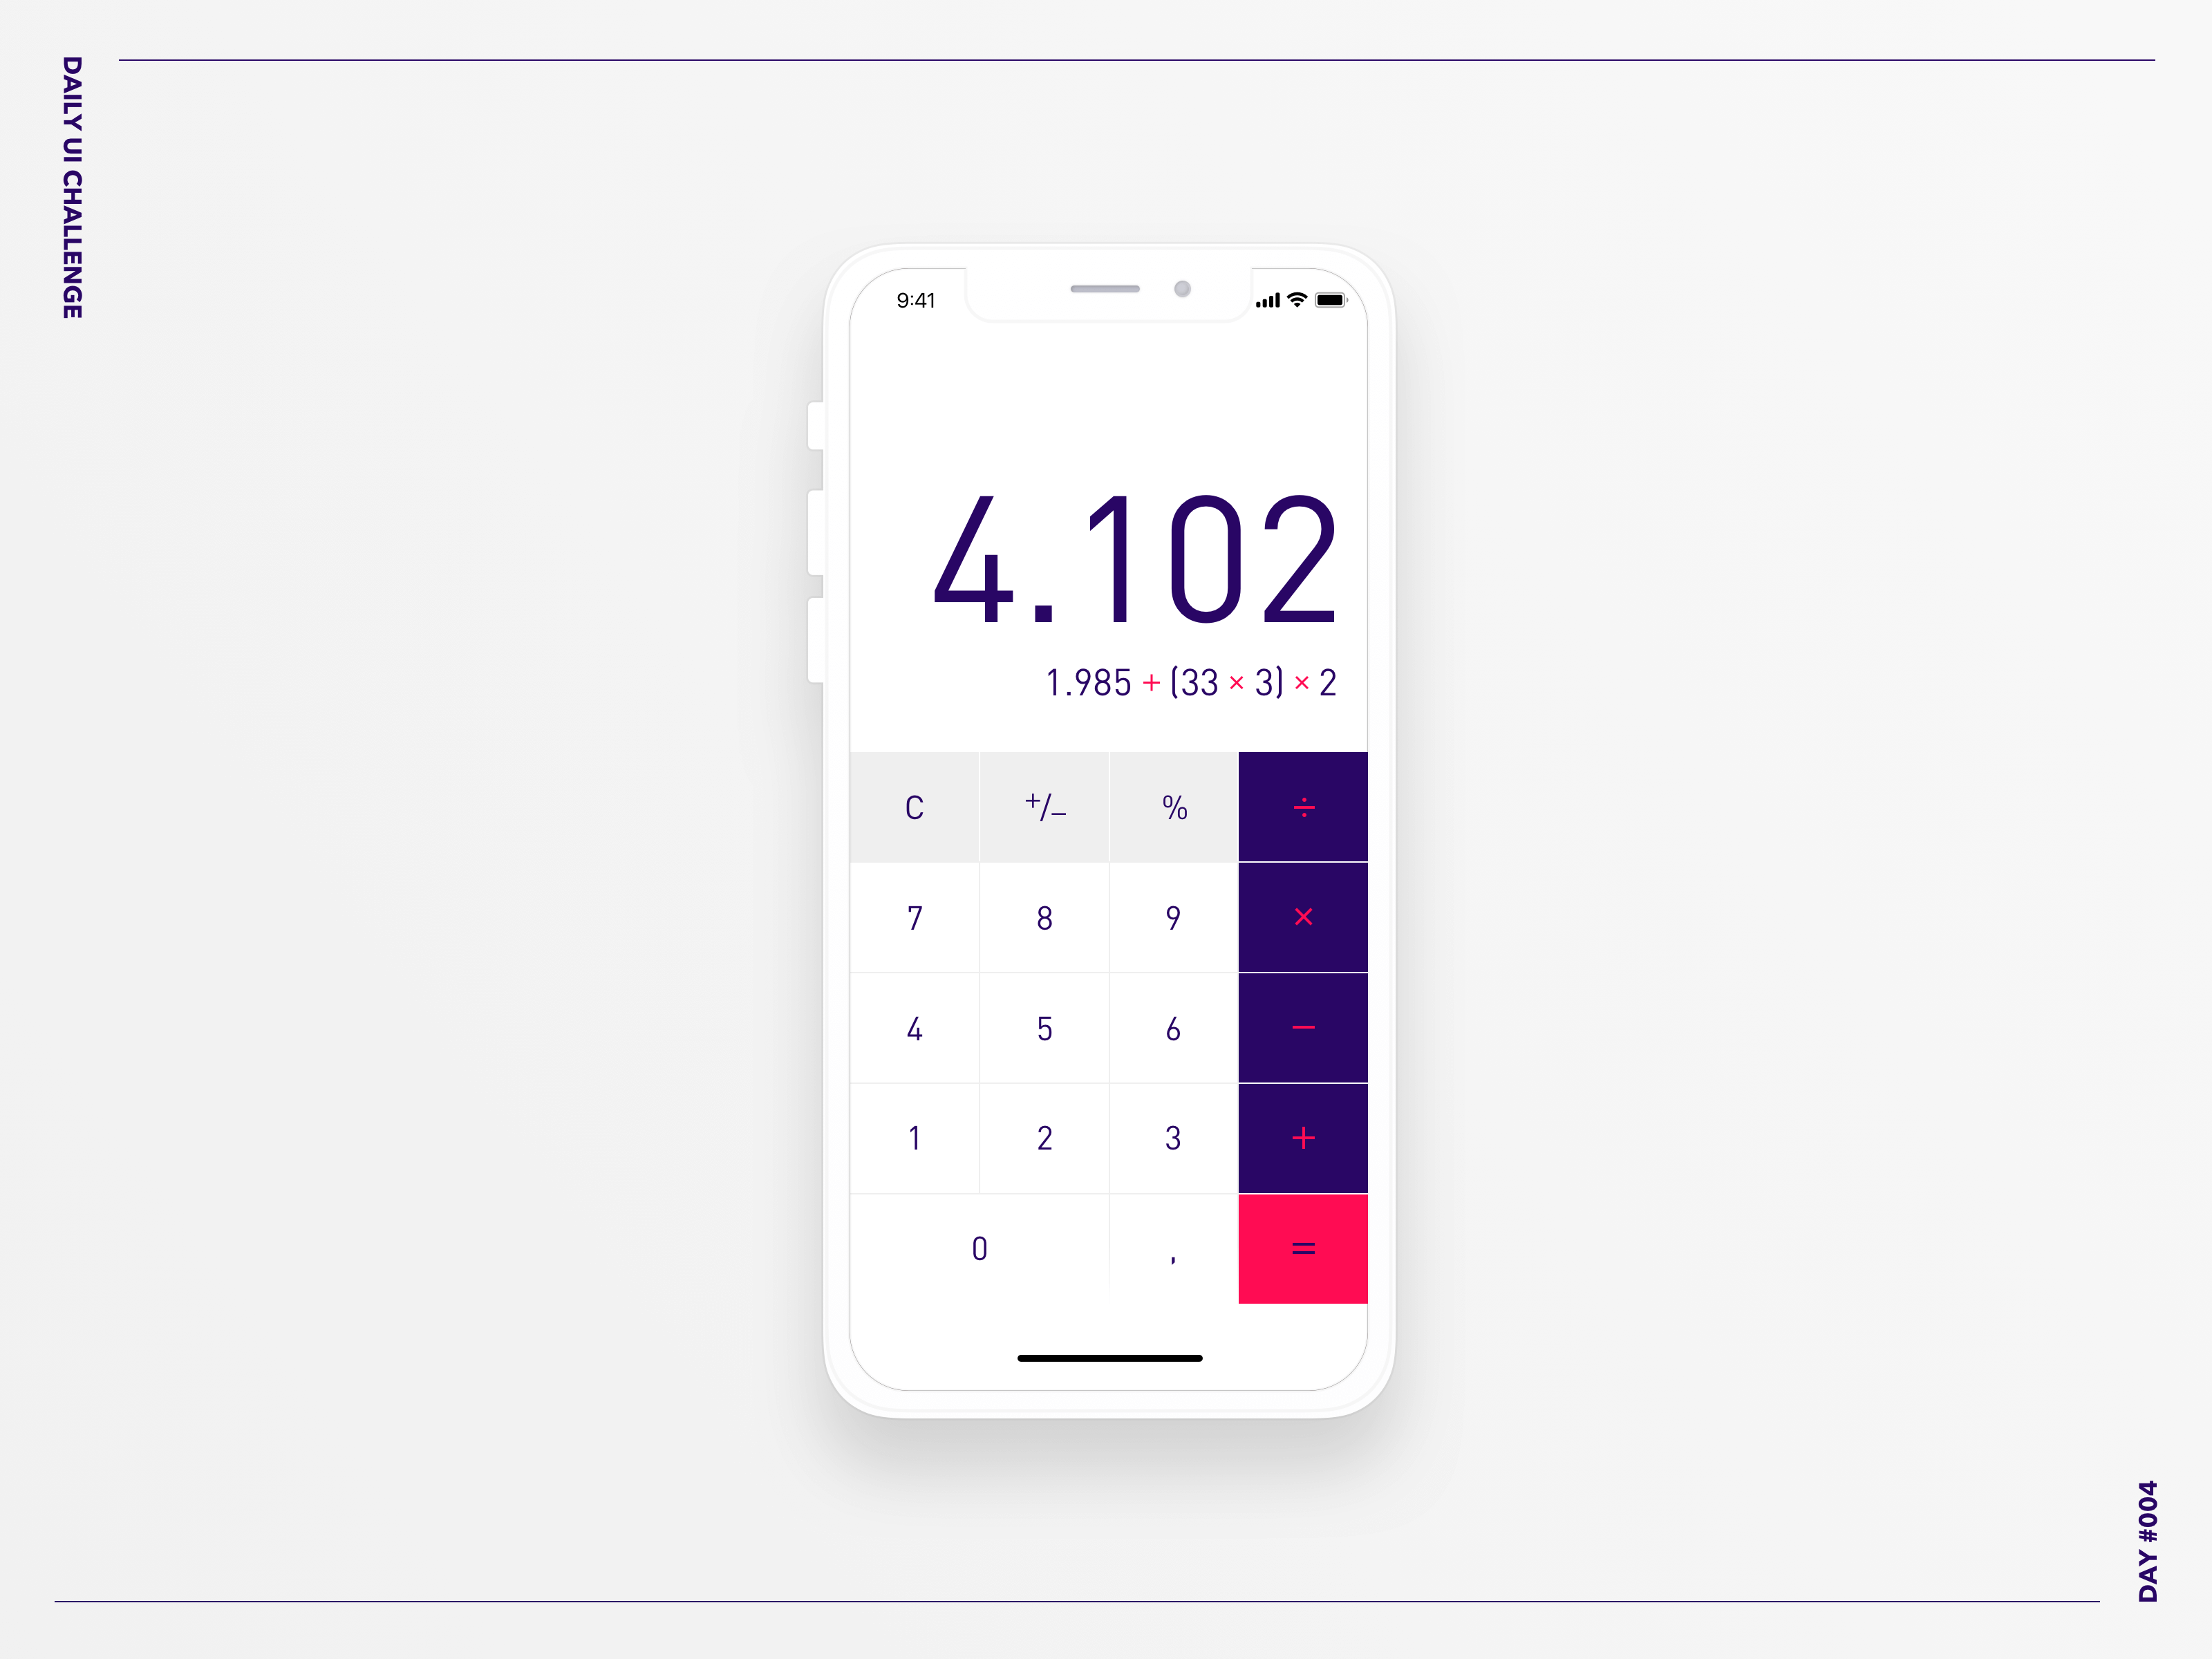 004-DUIC-Calculator-Dribbble-1